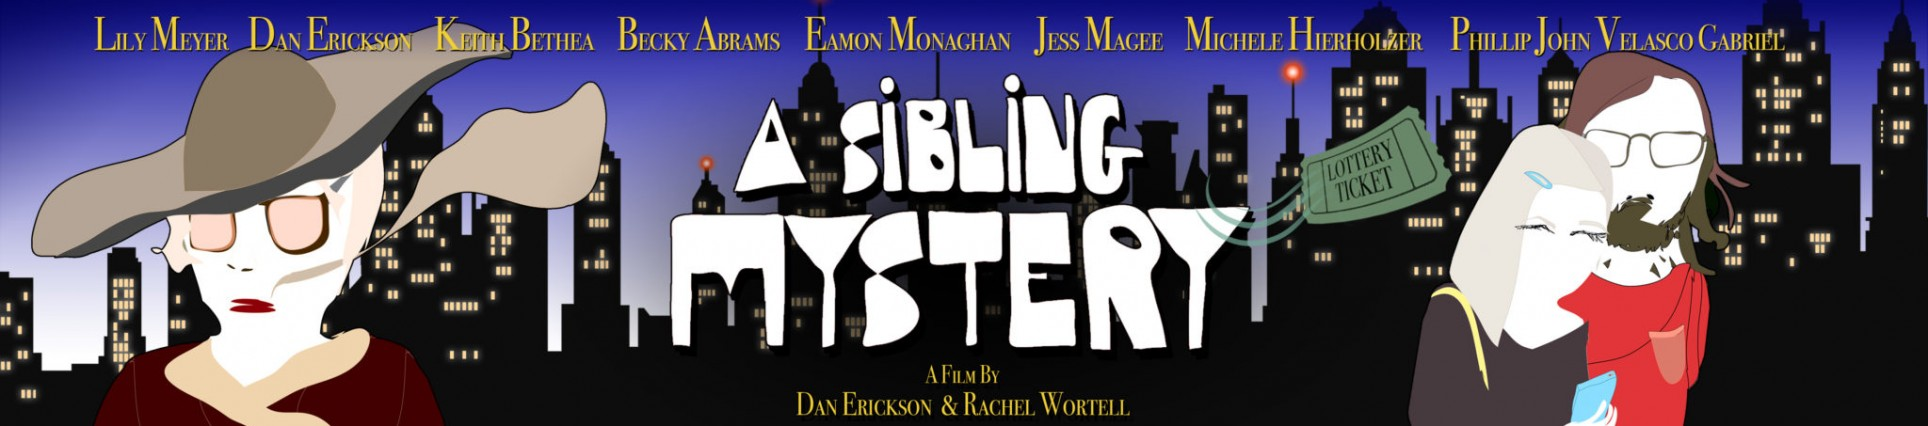 A-Sibling-Mystery_banner_frontpage